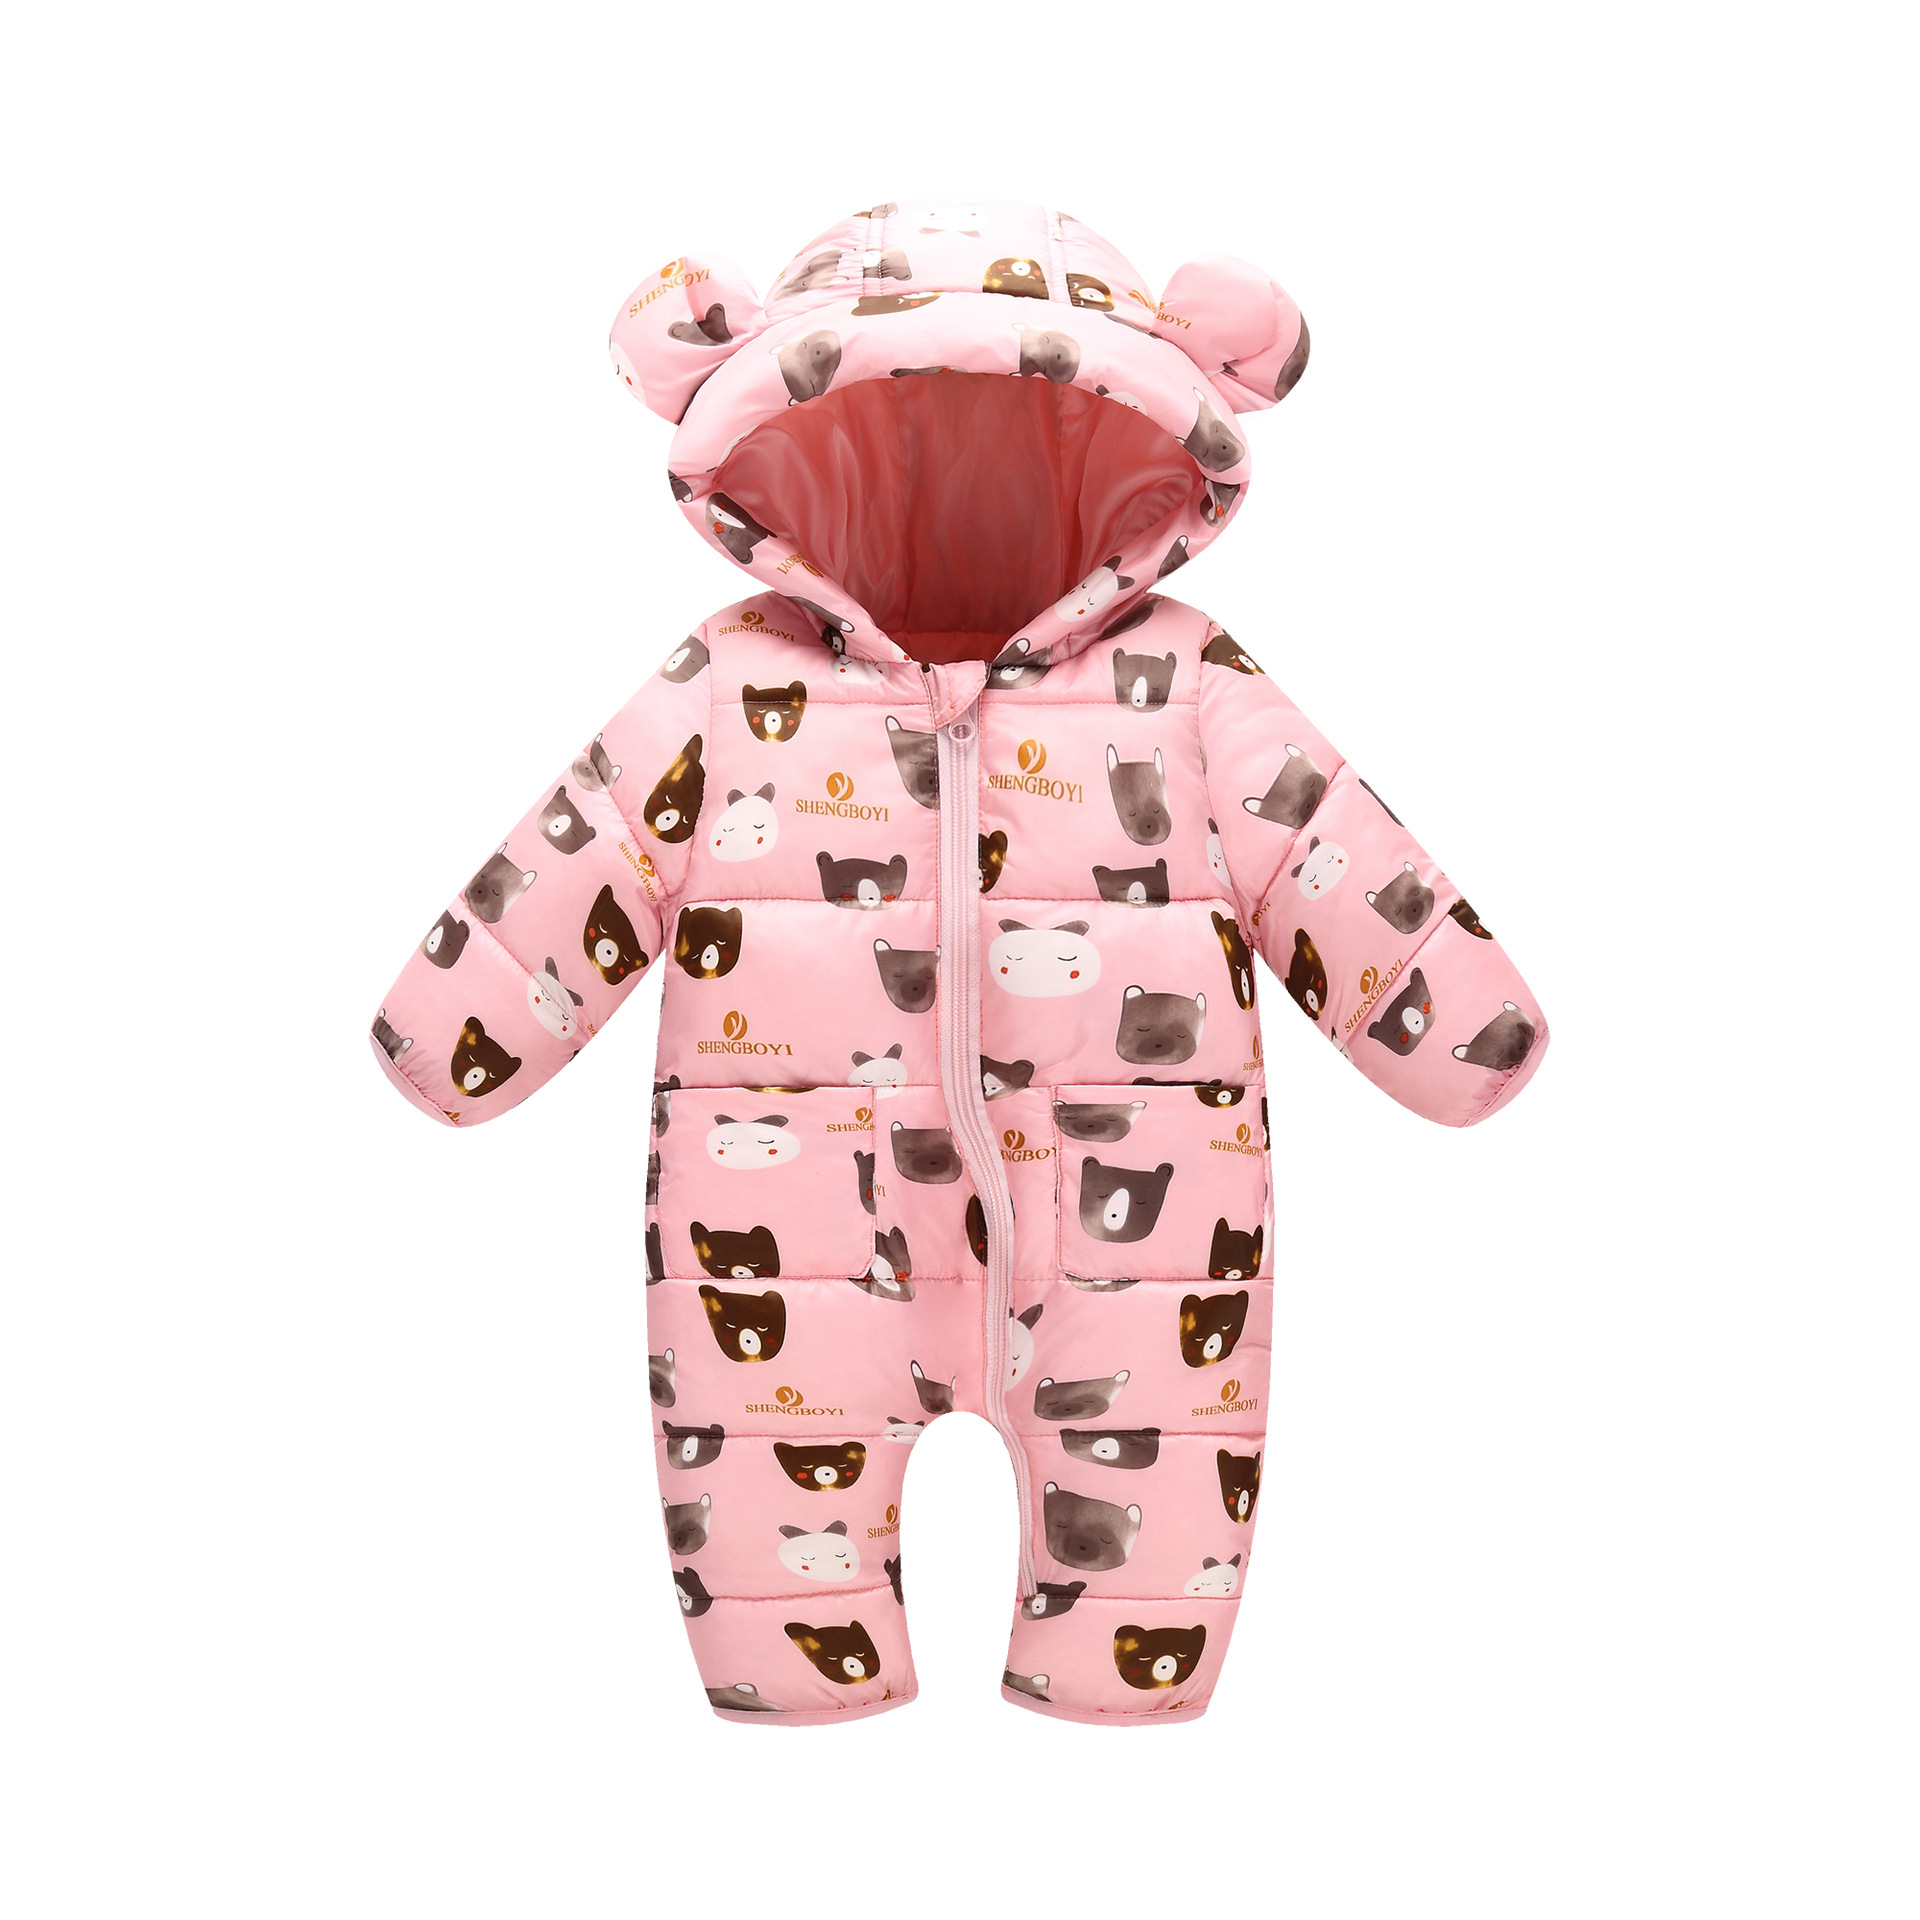 Girls Infants Climb Clothes Baby Romper Jumpsuit Children Climb Clothes Cotton Overalls Boys Long Sleeve Hooded Romper<br>